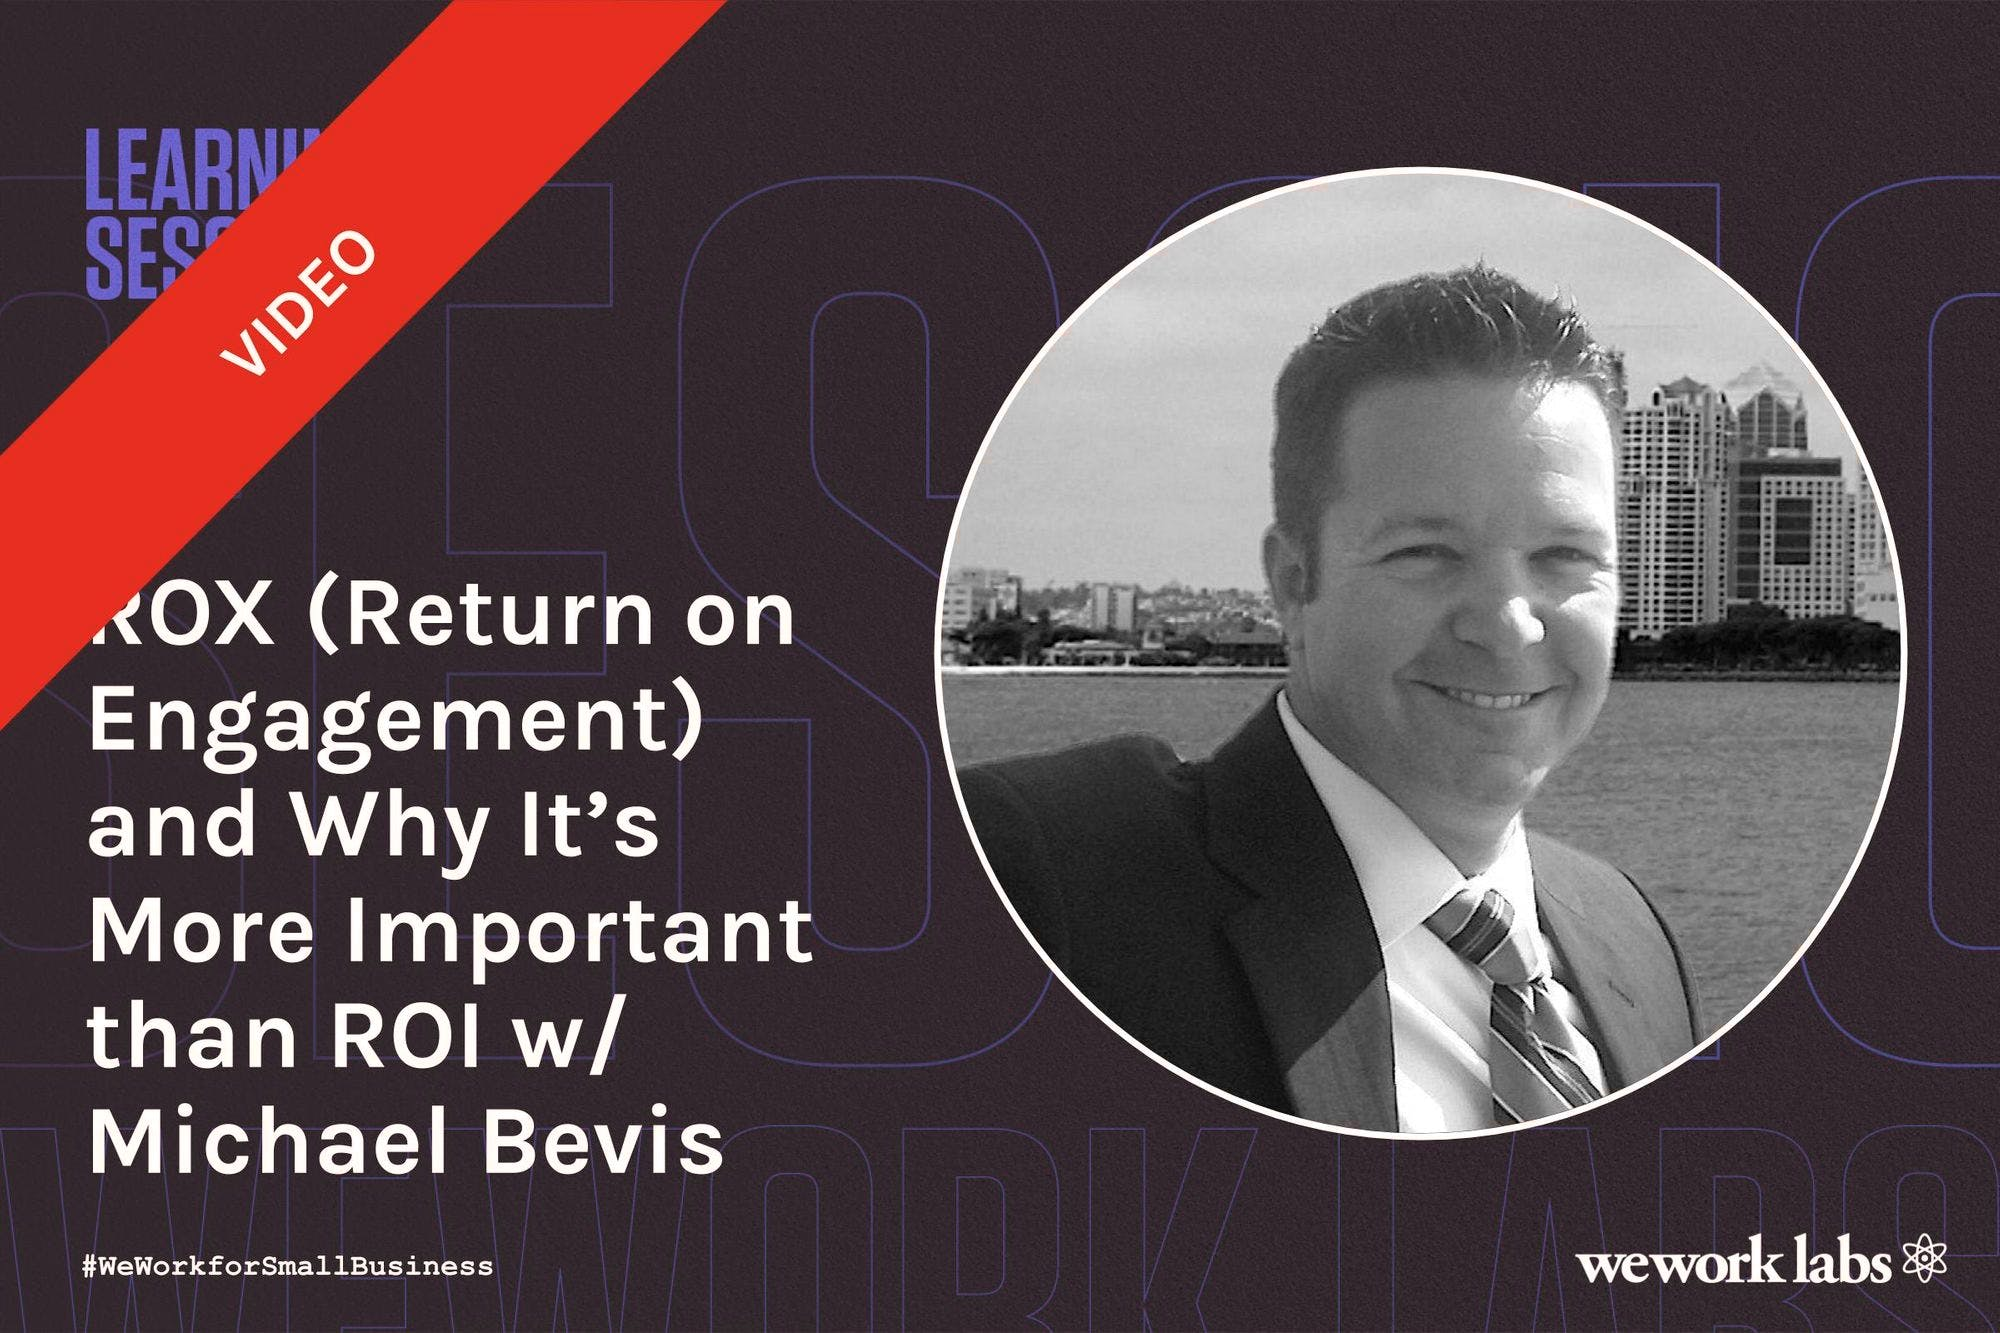 Return on Engagement, and Why It's More Important than ROI